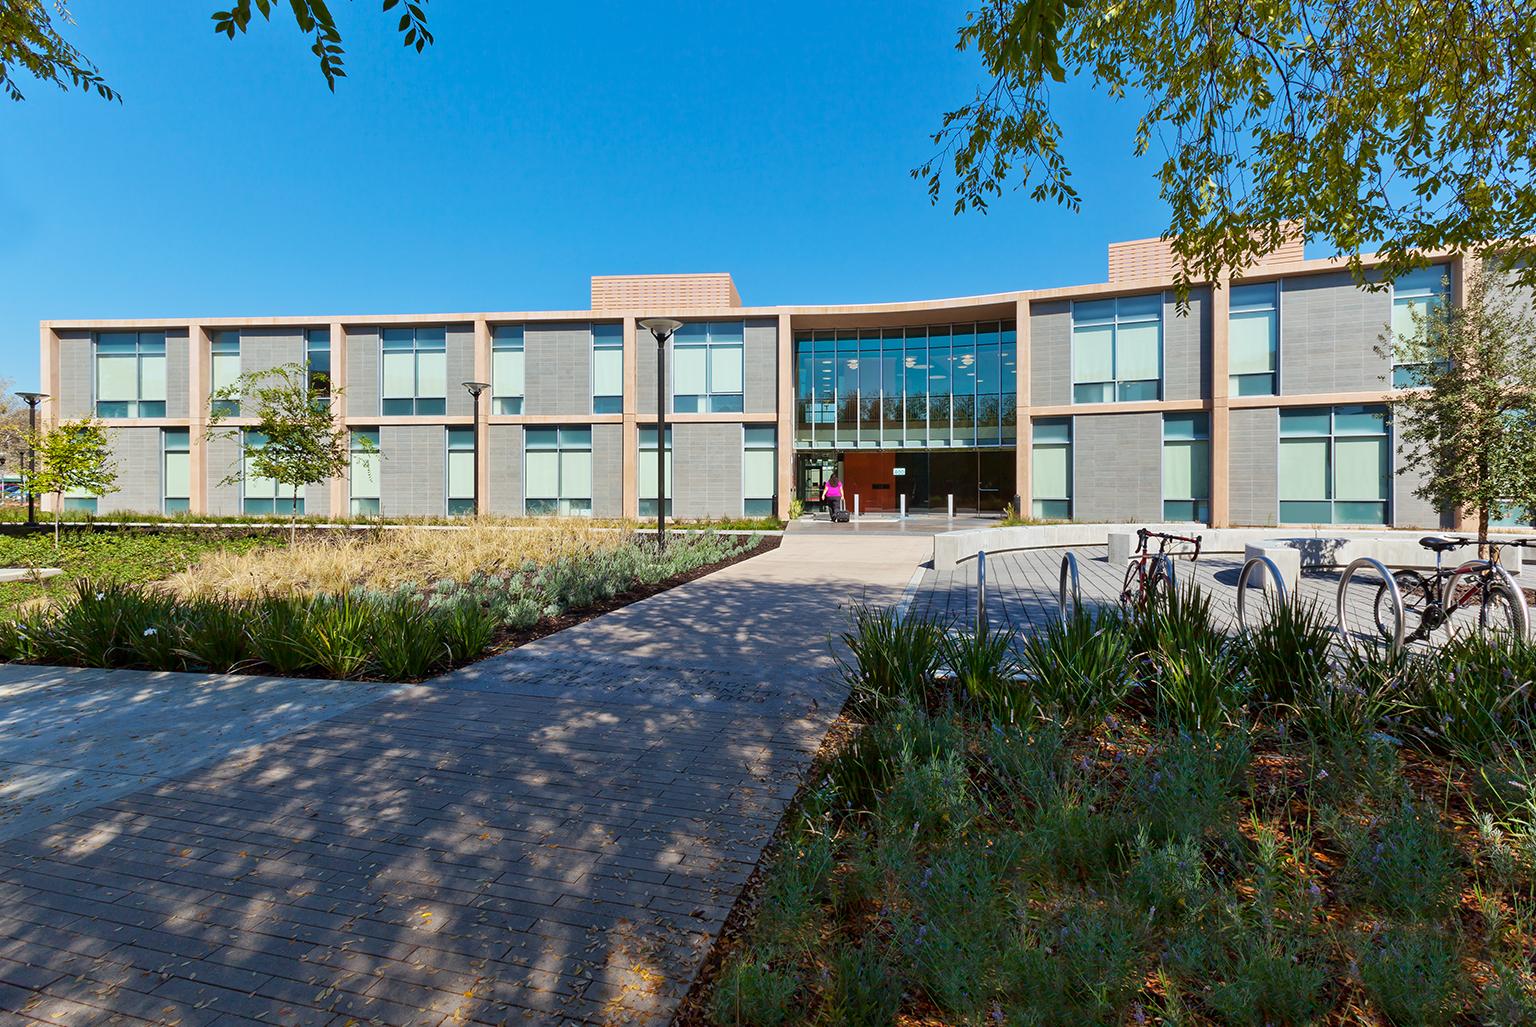 Chabot College Instructional Office Building